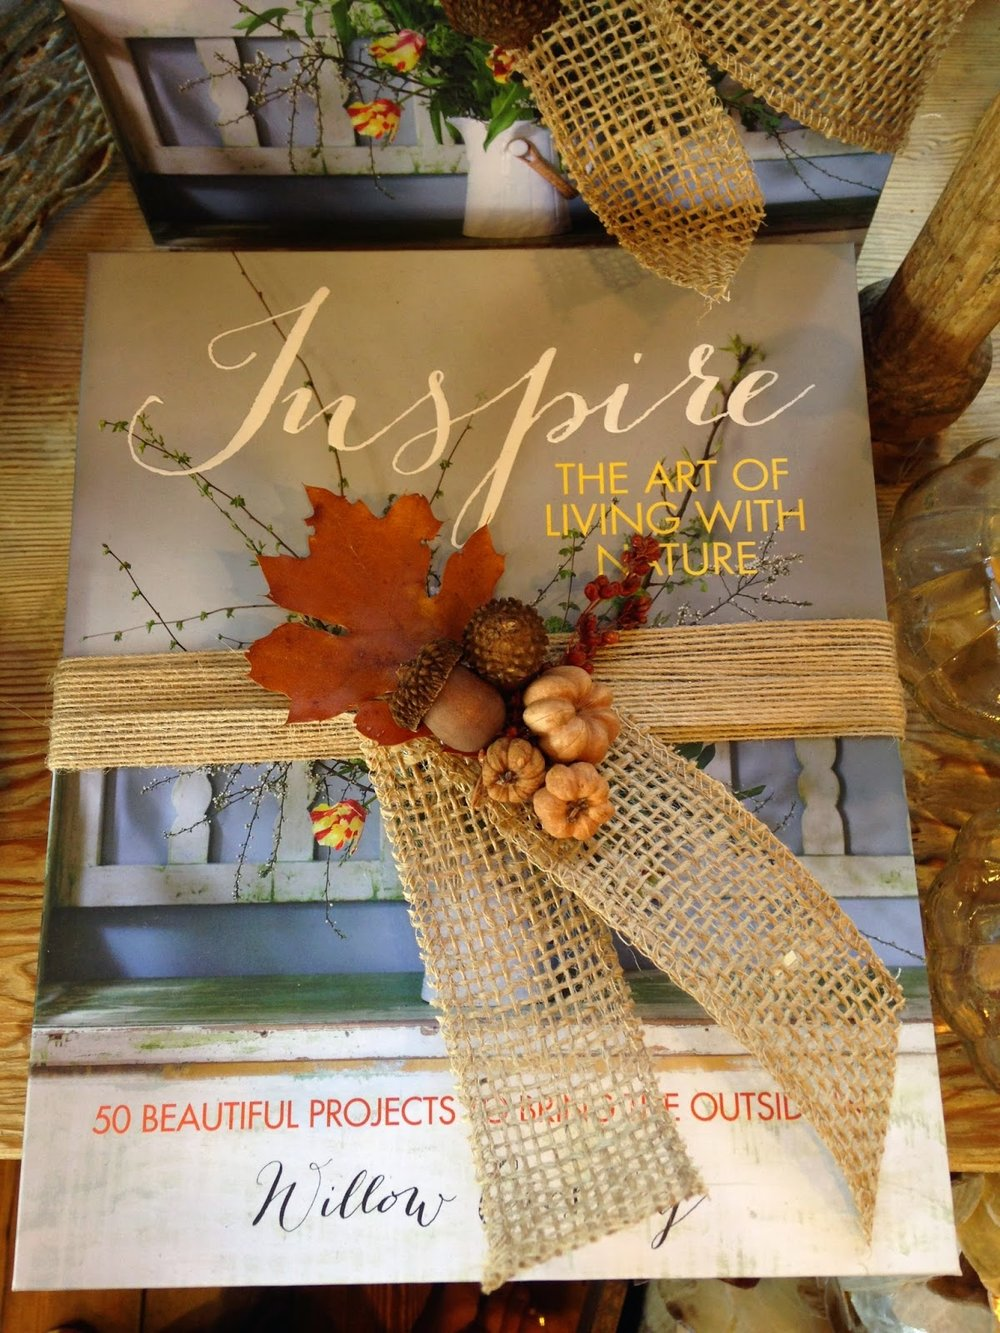 les fleurs : andover florist, floral shop, garden floral store : inspire, the art of living with nature : outside projects book